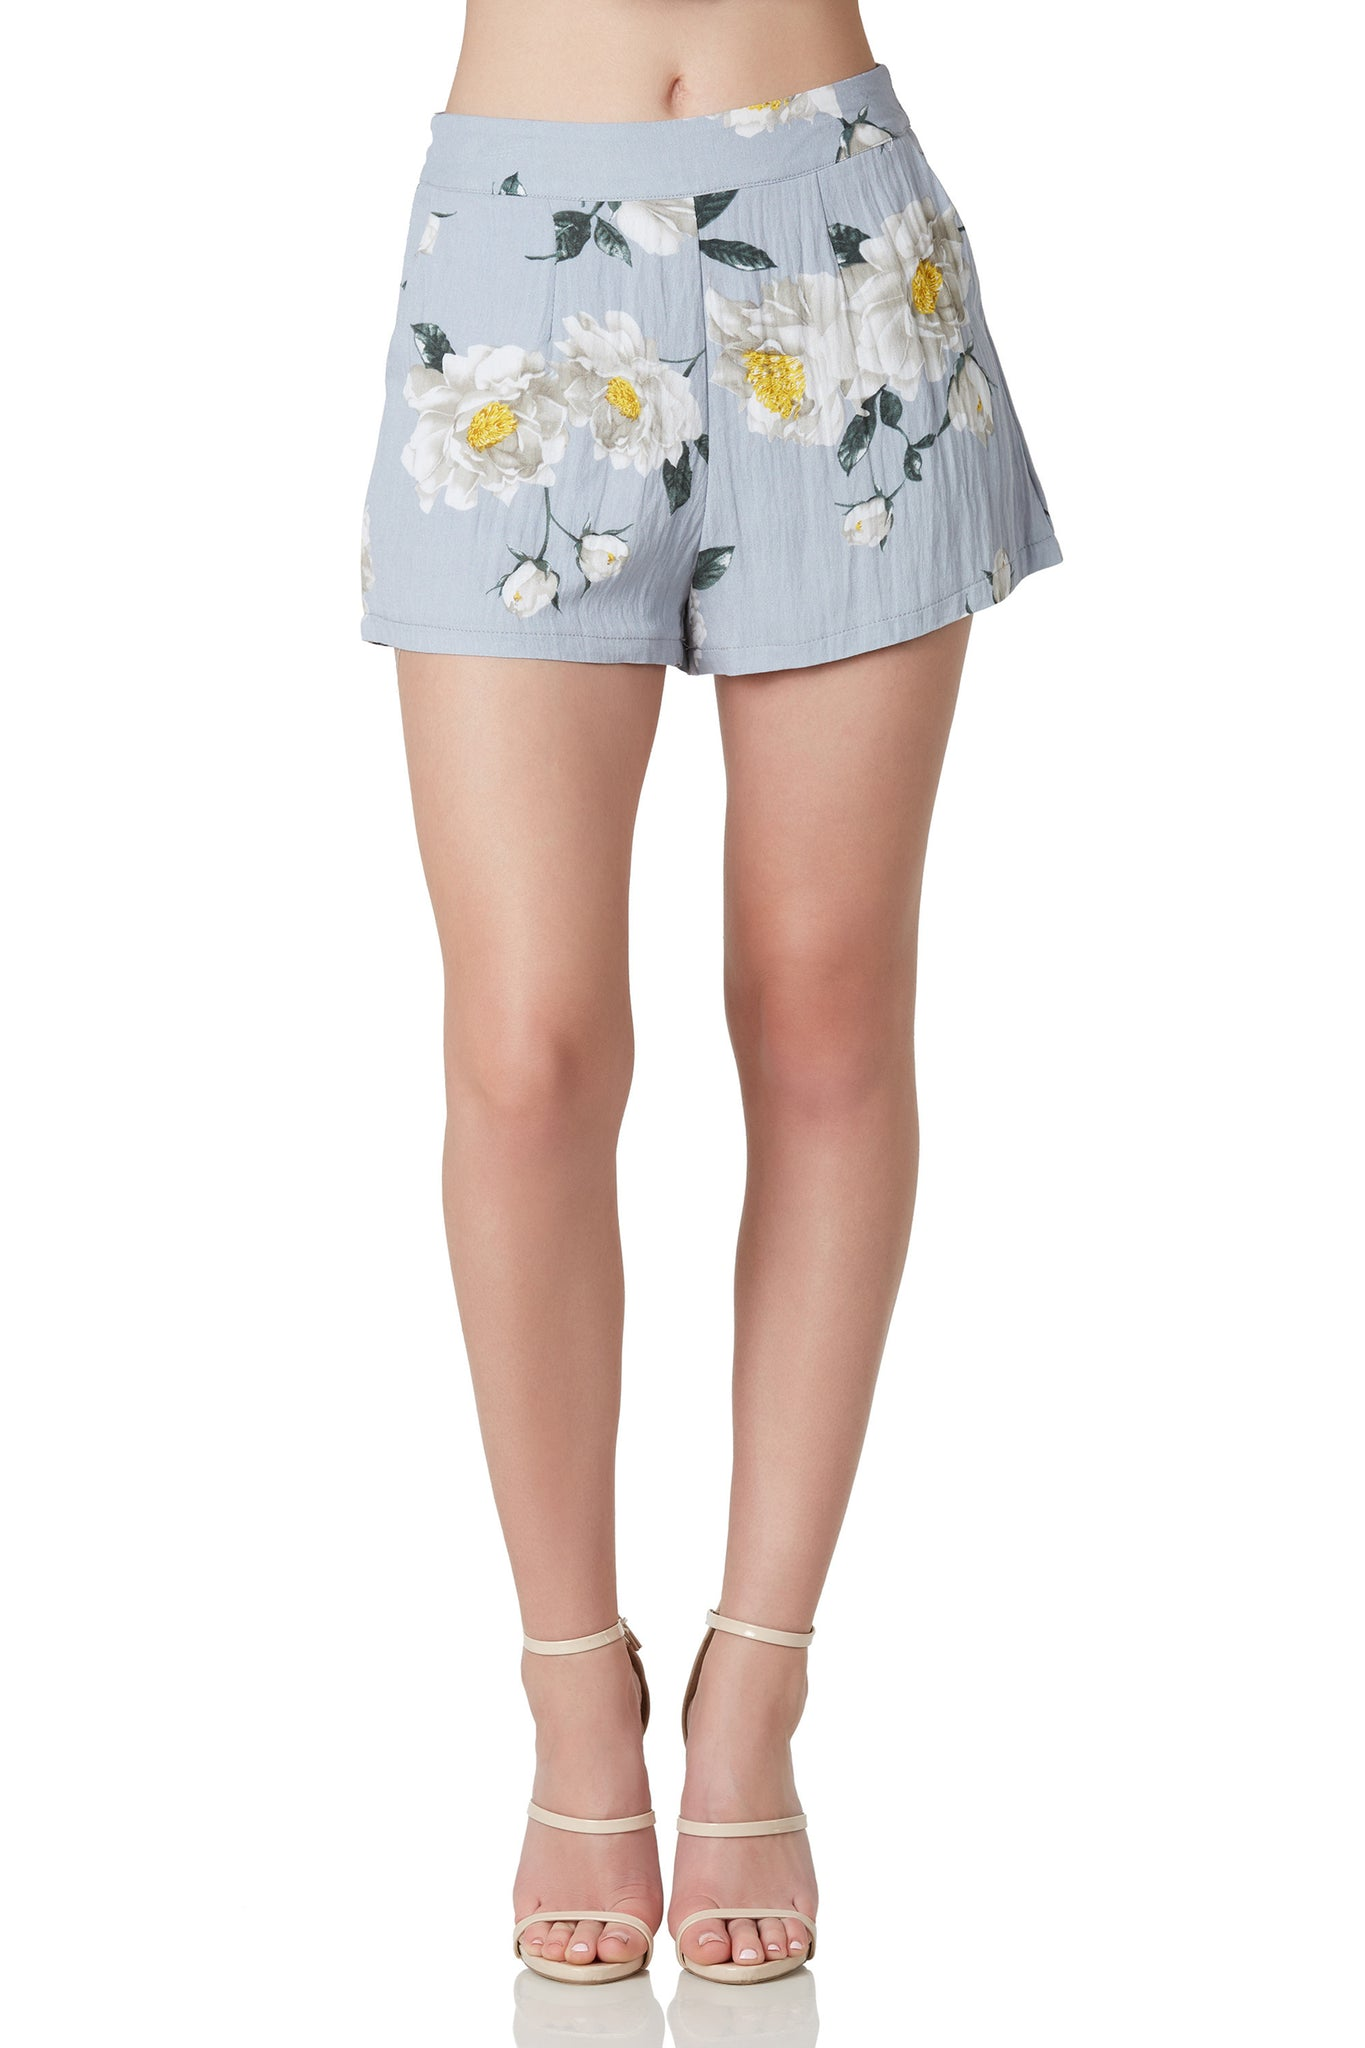 Fully lined high rise shorts with floral patterns throughout. Side pockets with back zip closure.